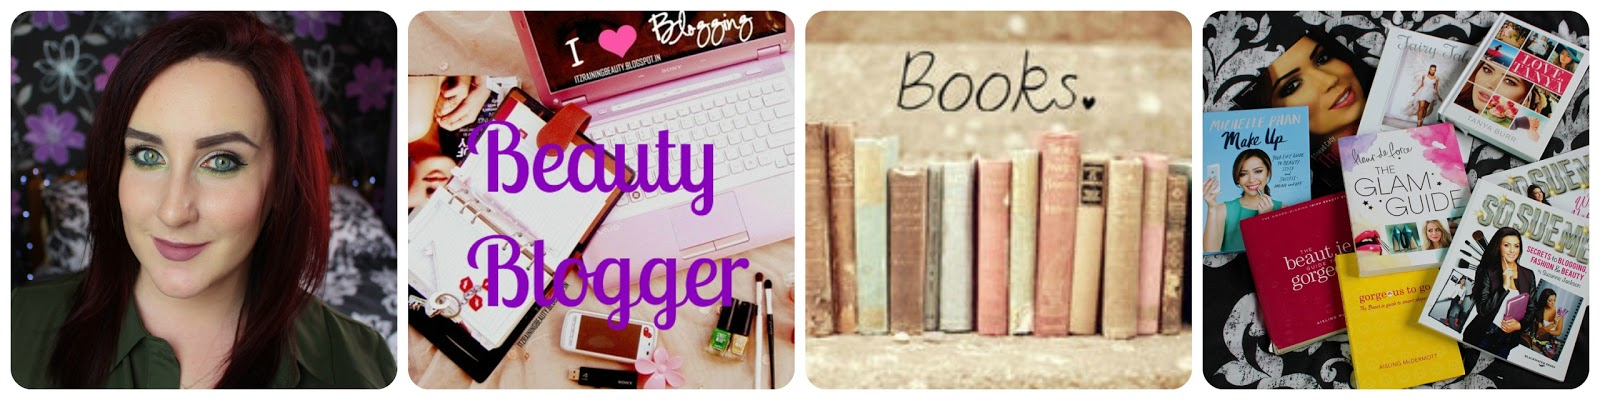 My Beauty Blogger Book Collection